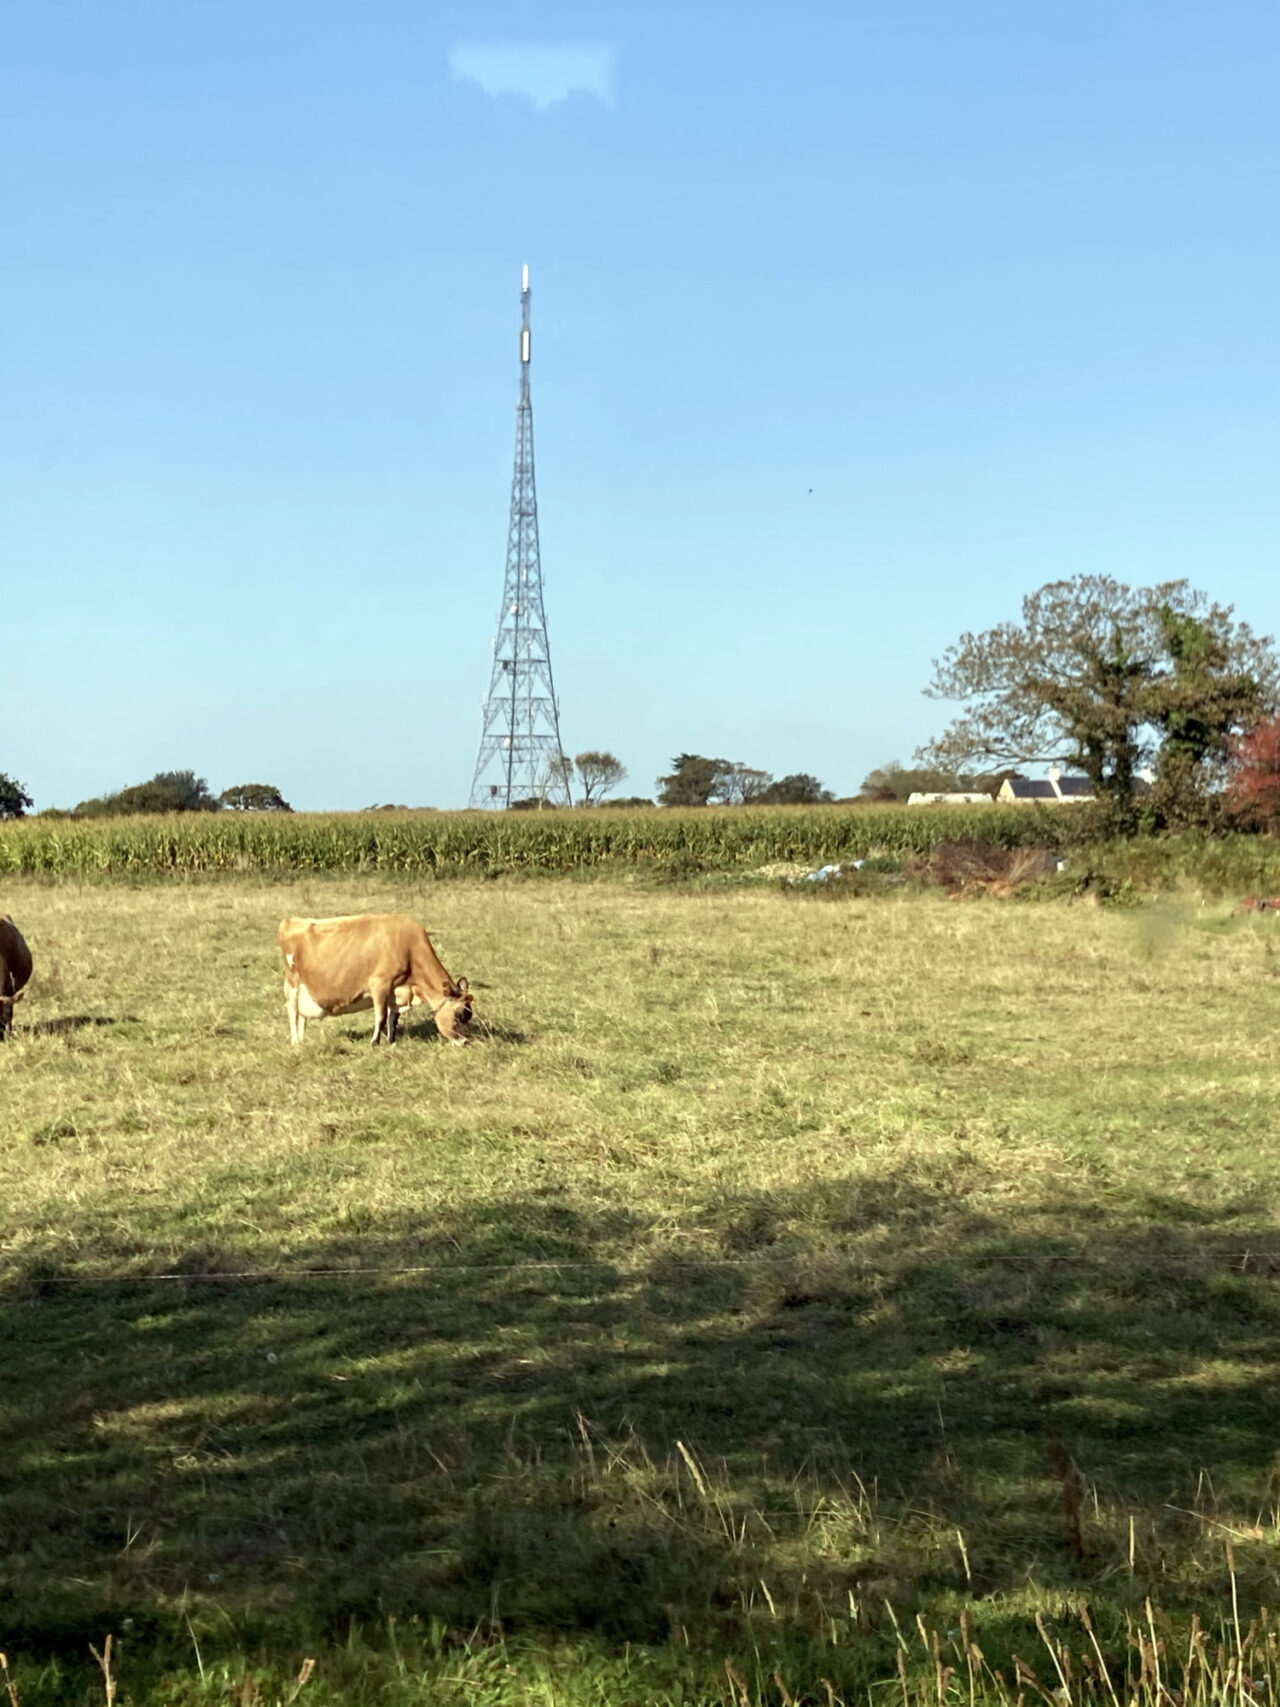 A jersey cow grazing in front of a telephone mast